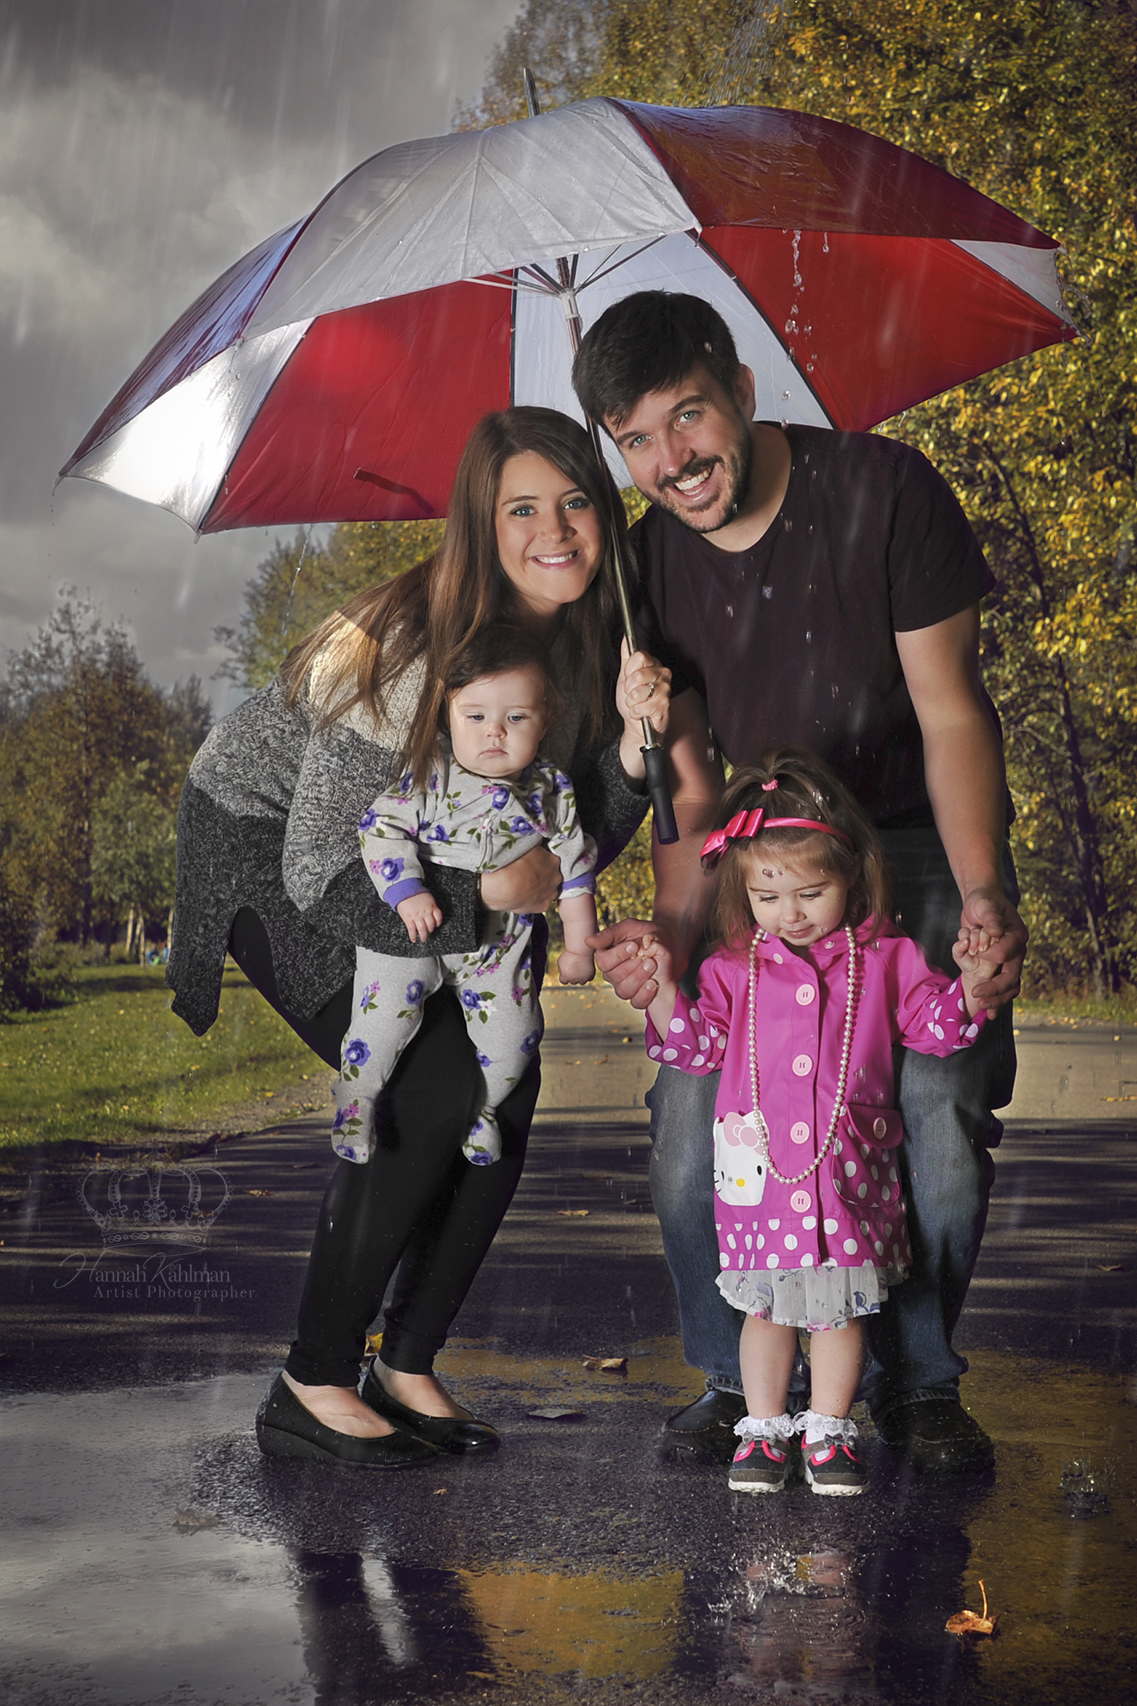 Family_in_rain_creative_outdoor_composit